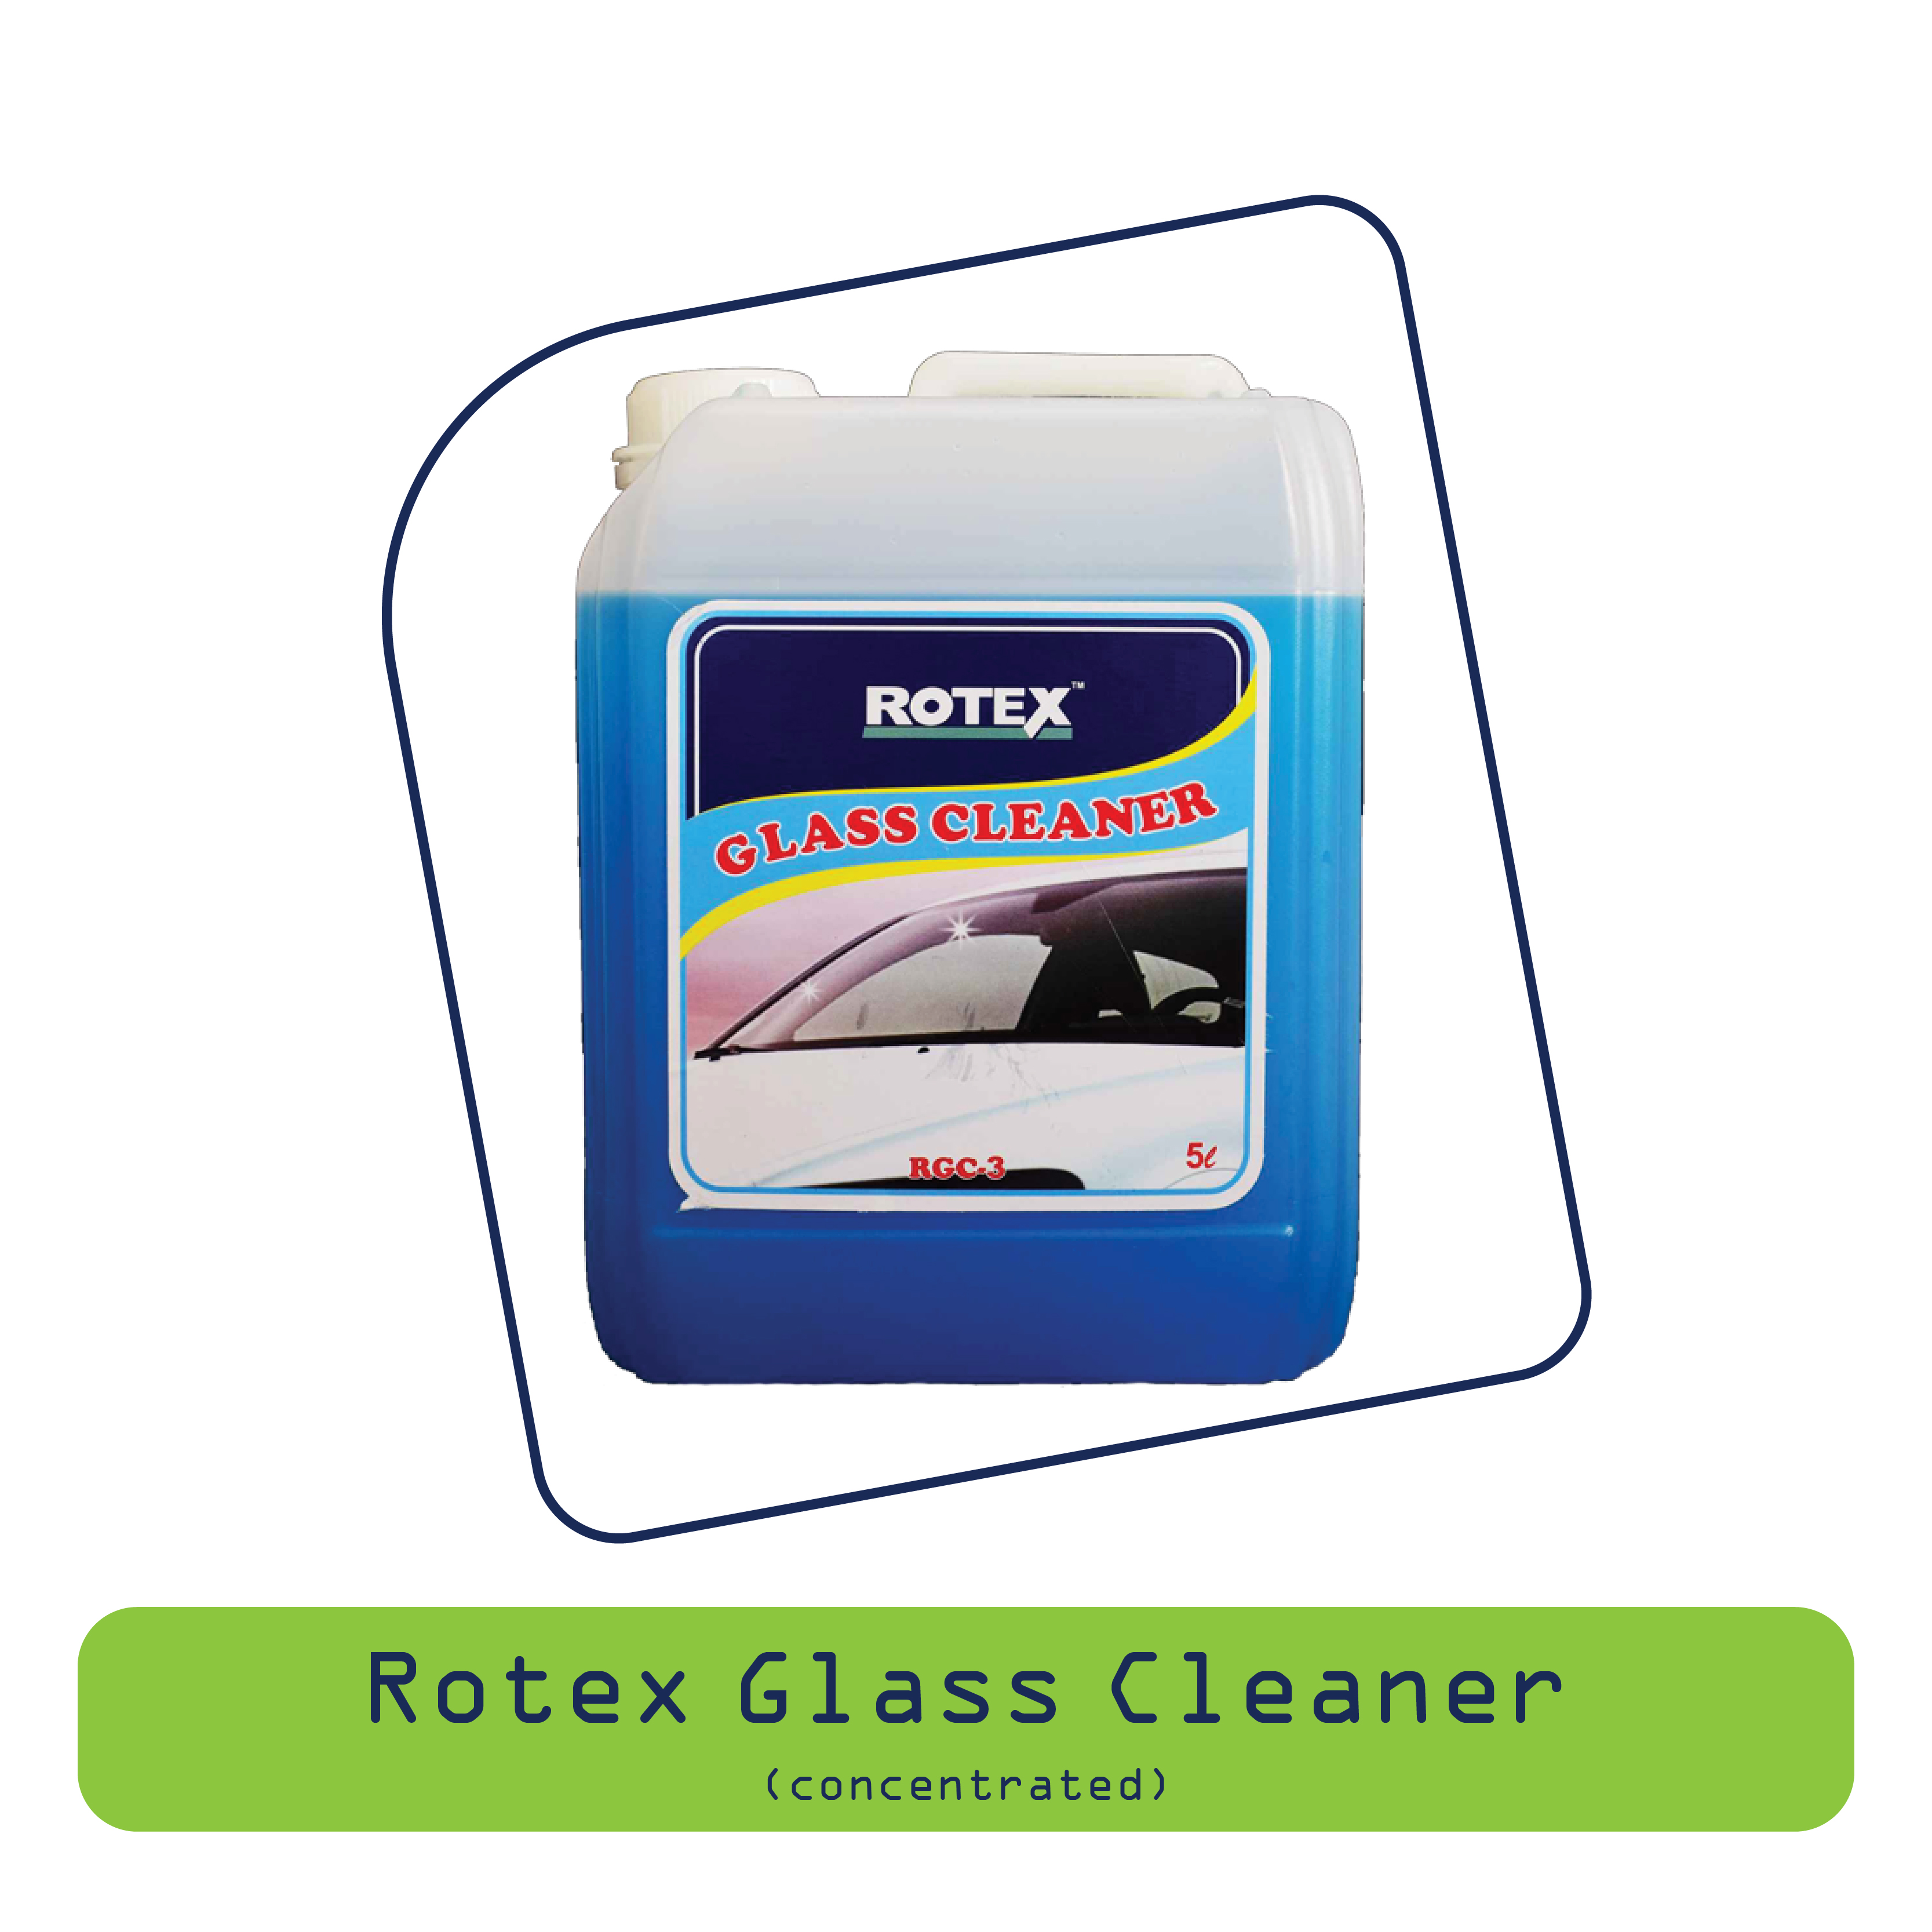 Rotex Glass Cleaner (Concerntratred)